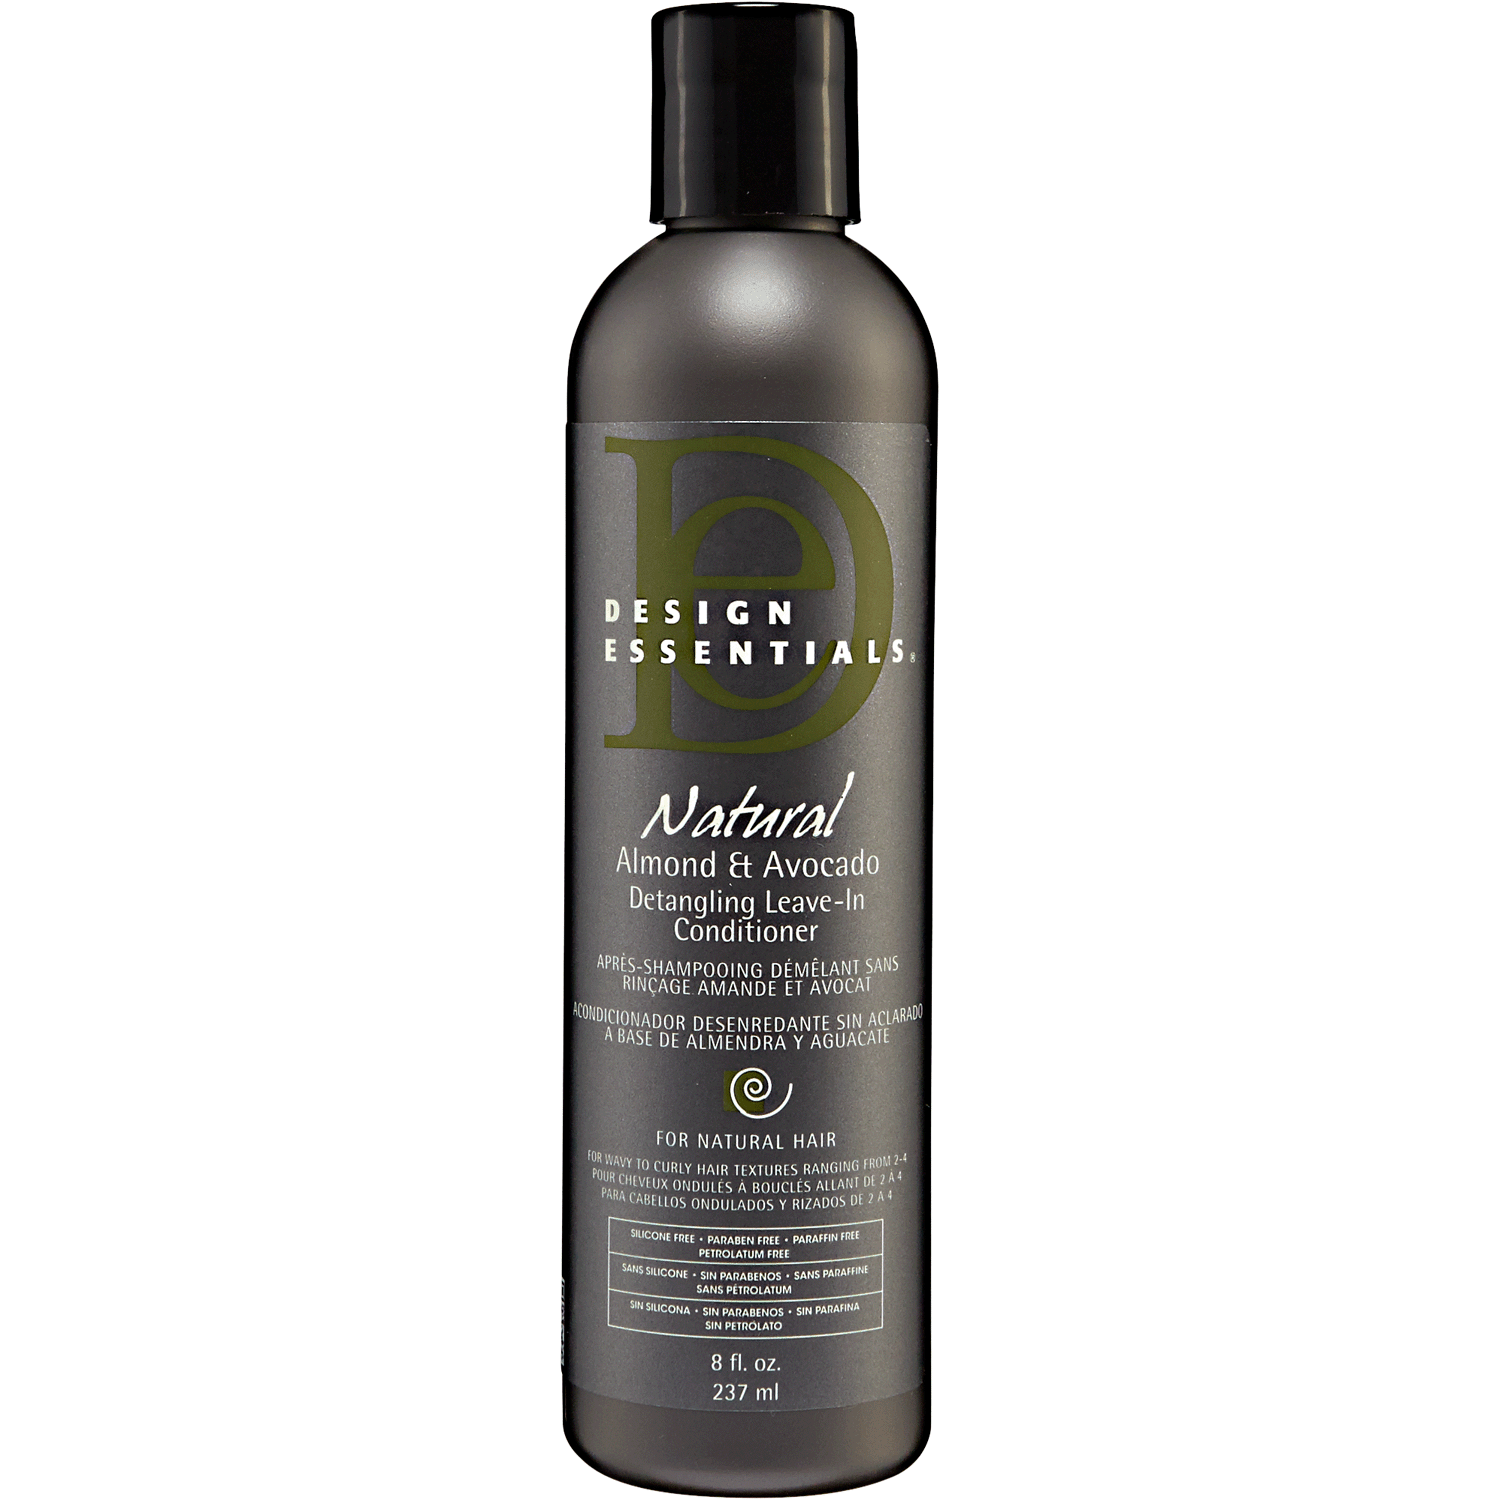 Design Essentials Detangling Leave In Conditioner By Almond